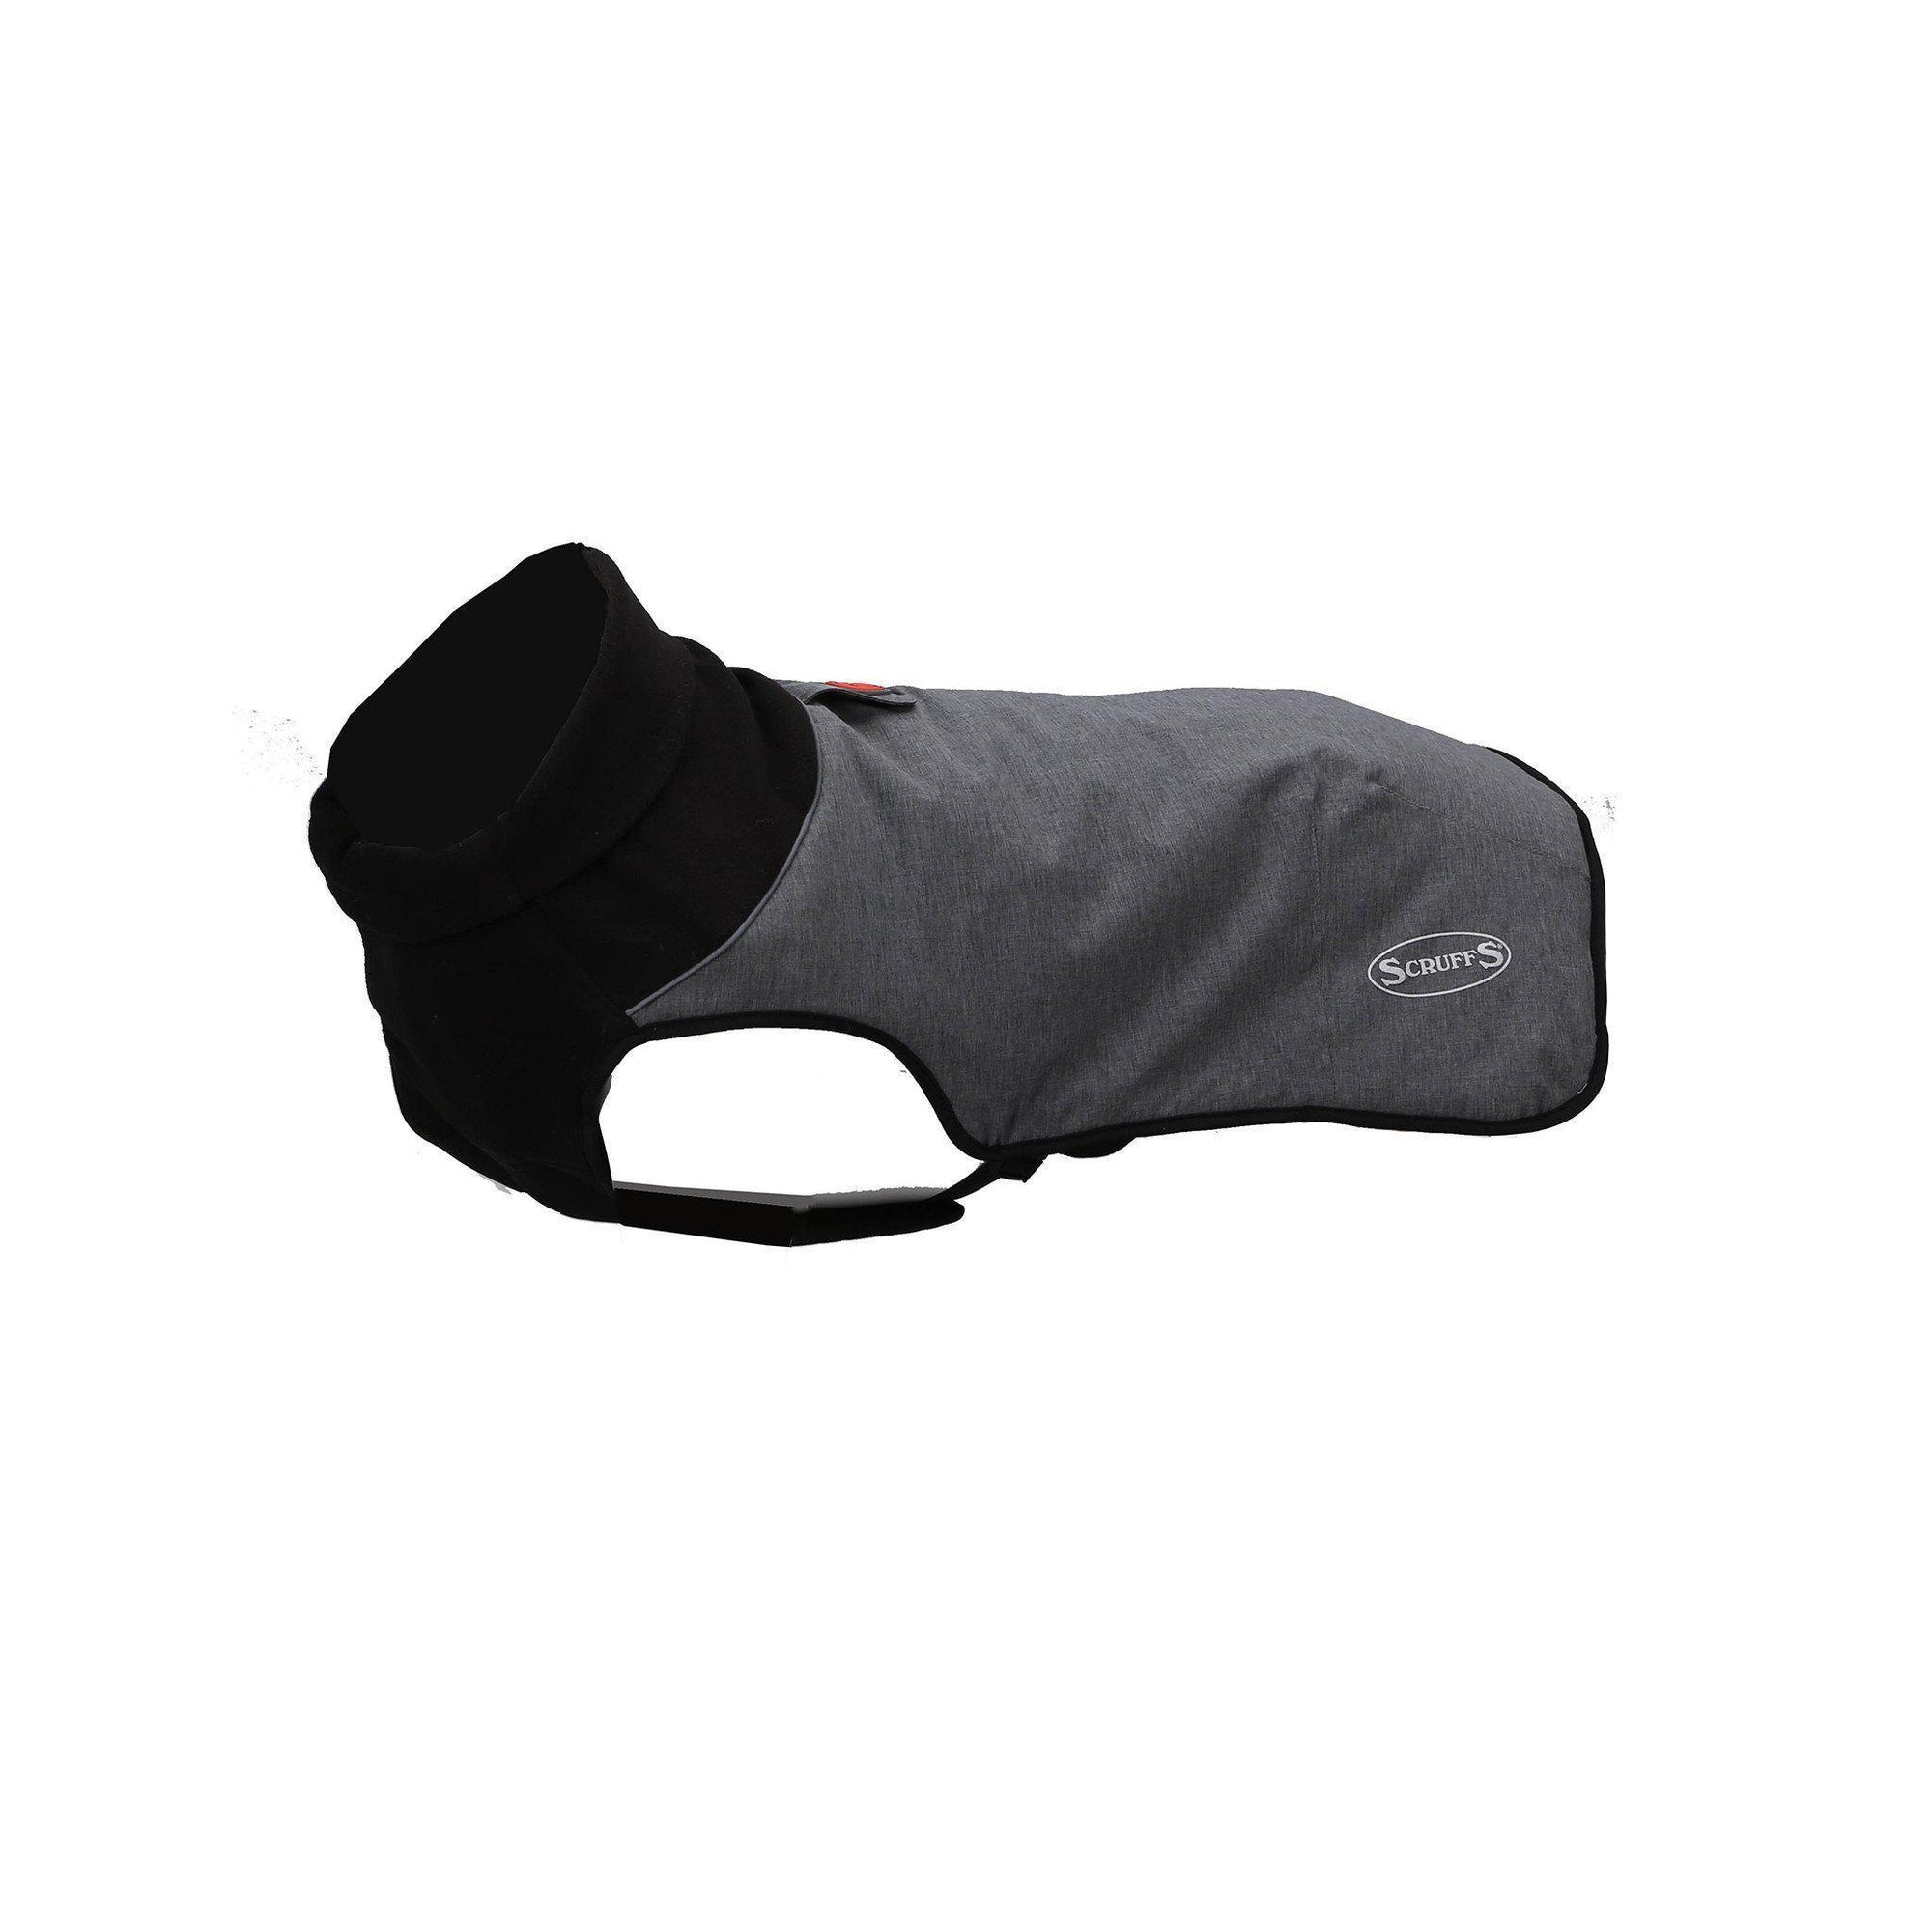 Scruffs Thermal Dog Coat - Cajun Grey - ComfyPet Products